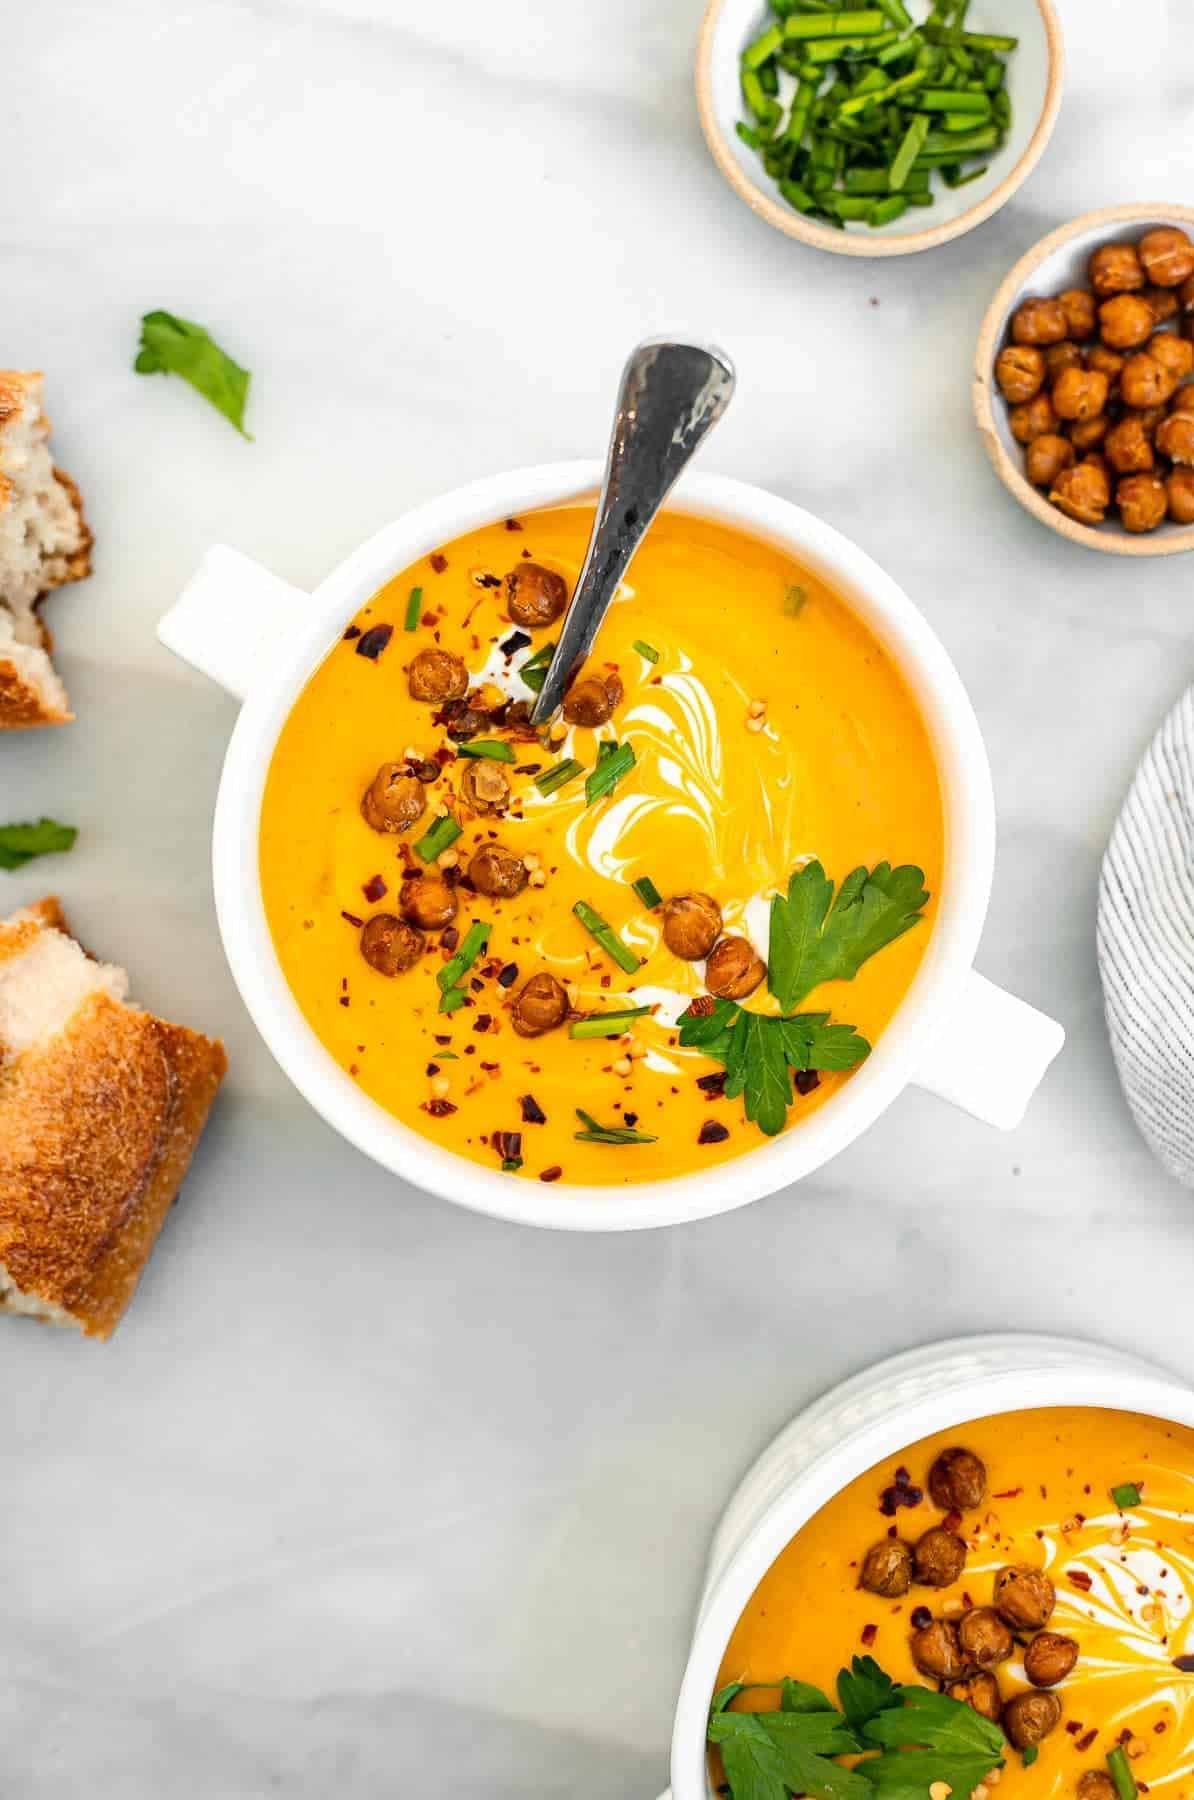 Overhead image of butternut squash soup with roasted chickpeas.